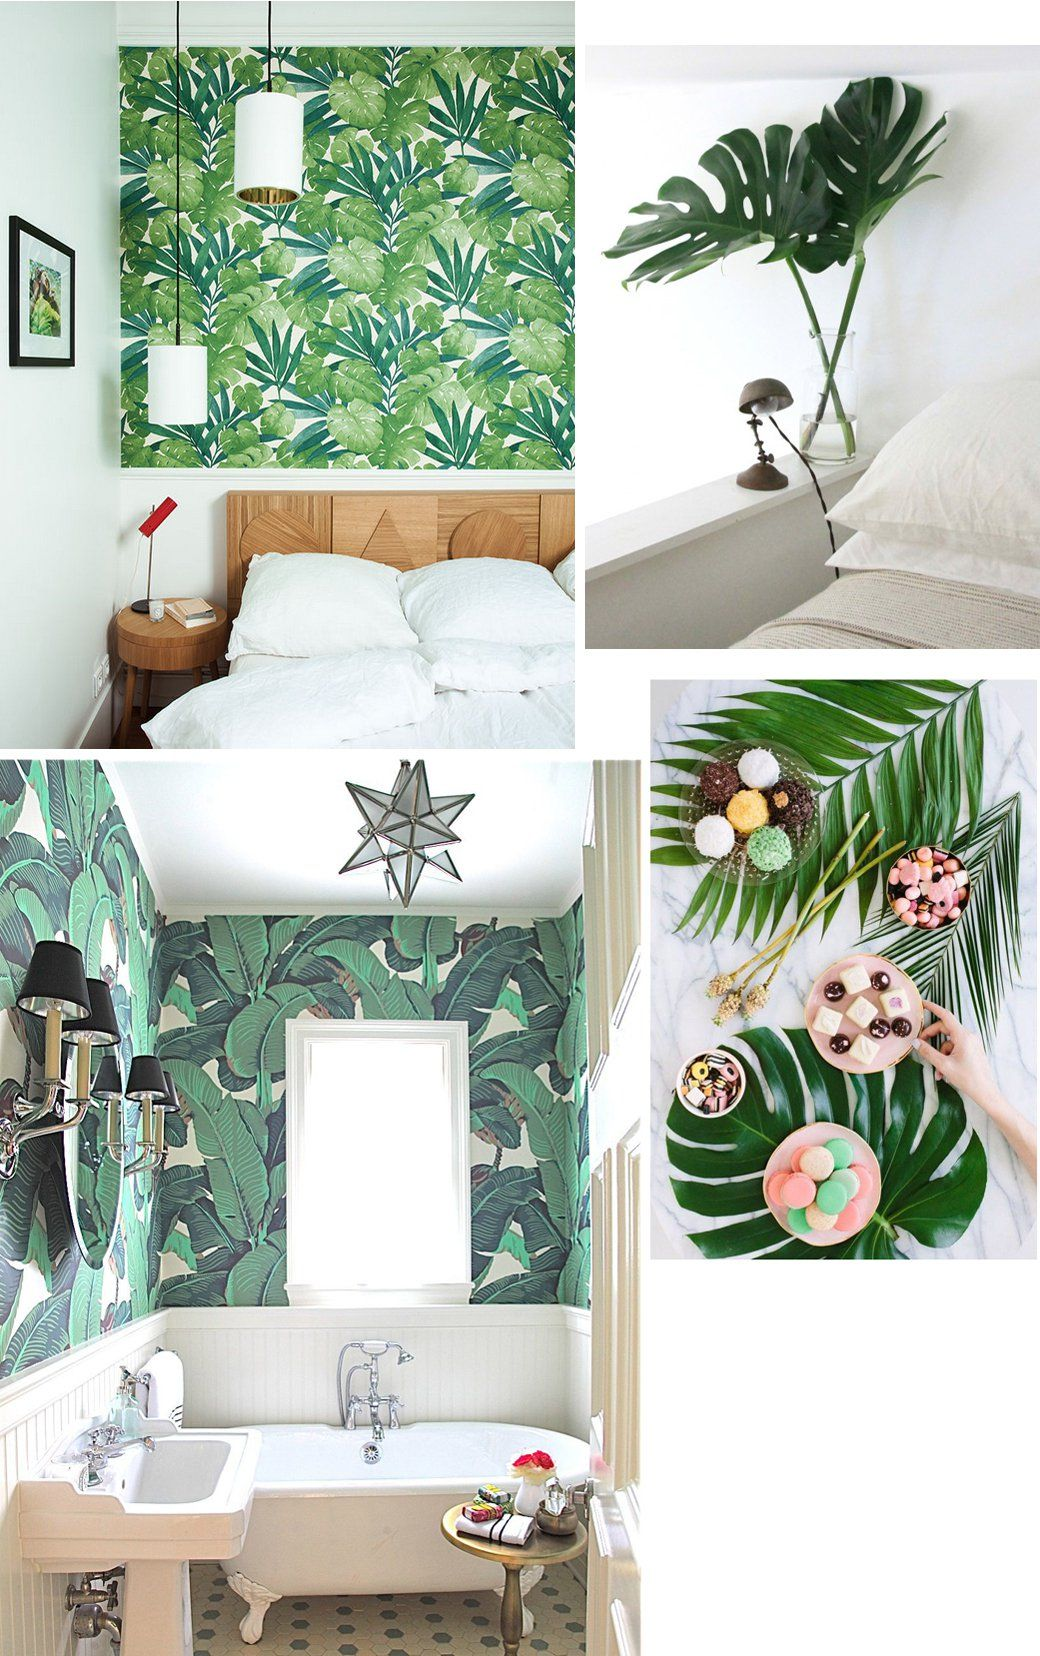 Trends 8 Leaves To Love Tropical Leaf Decor Ideas Decor8 Tropical Leaf Decor Trending Decor Tropical Decor Check out our tropical leaf decor selection for the very best in unique or custom, handmade pieces from our shops. tropical leaf decor ideas